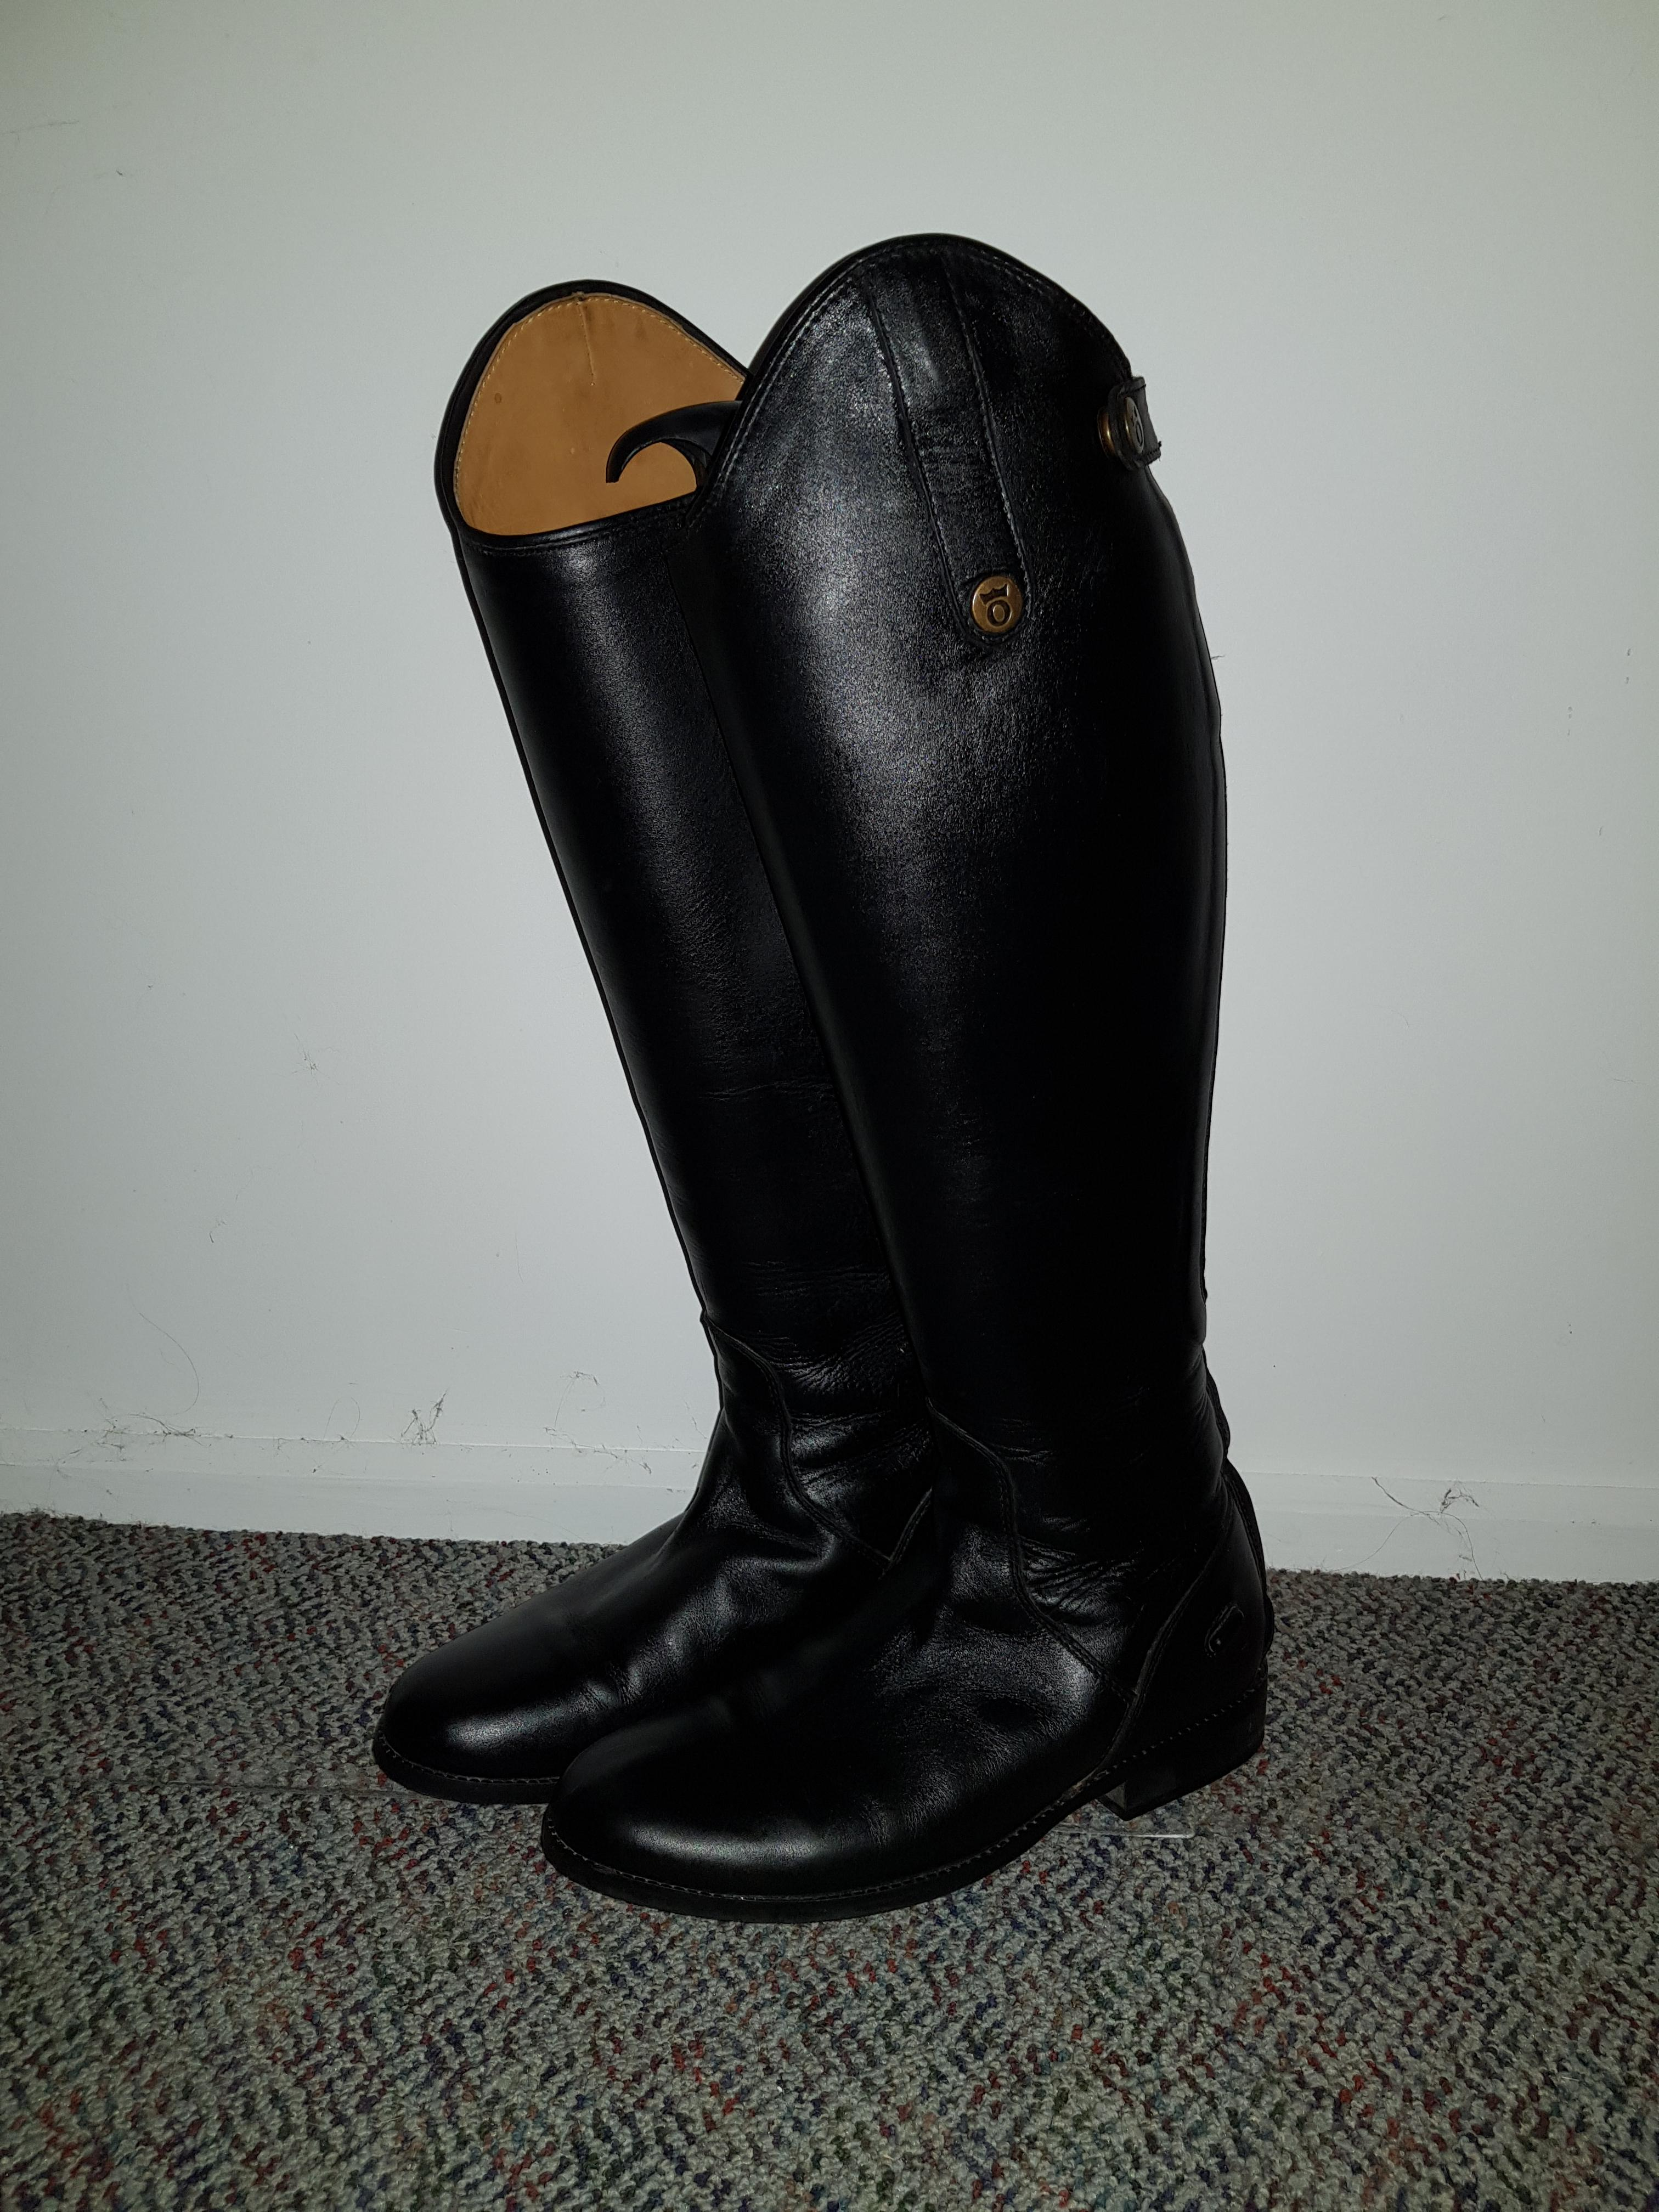 Topboots size 8/8.5